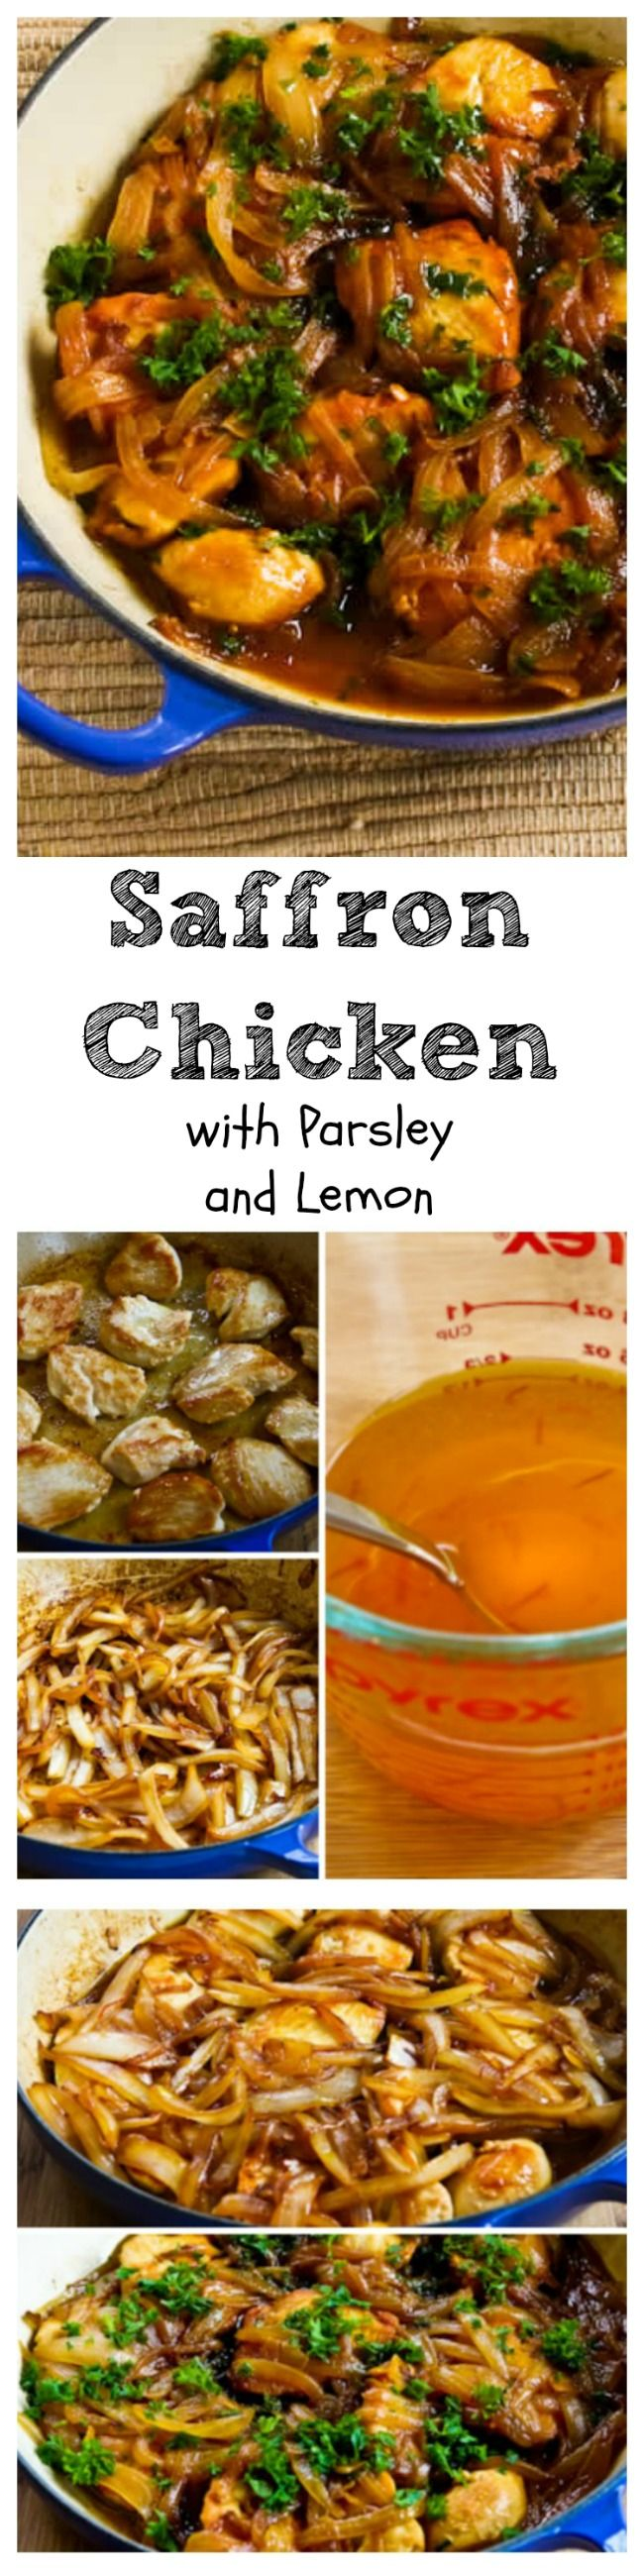 sauce basil and parsley saffron chicken with parsley and lemon recipe ...